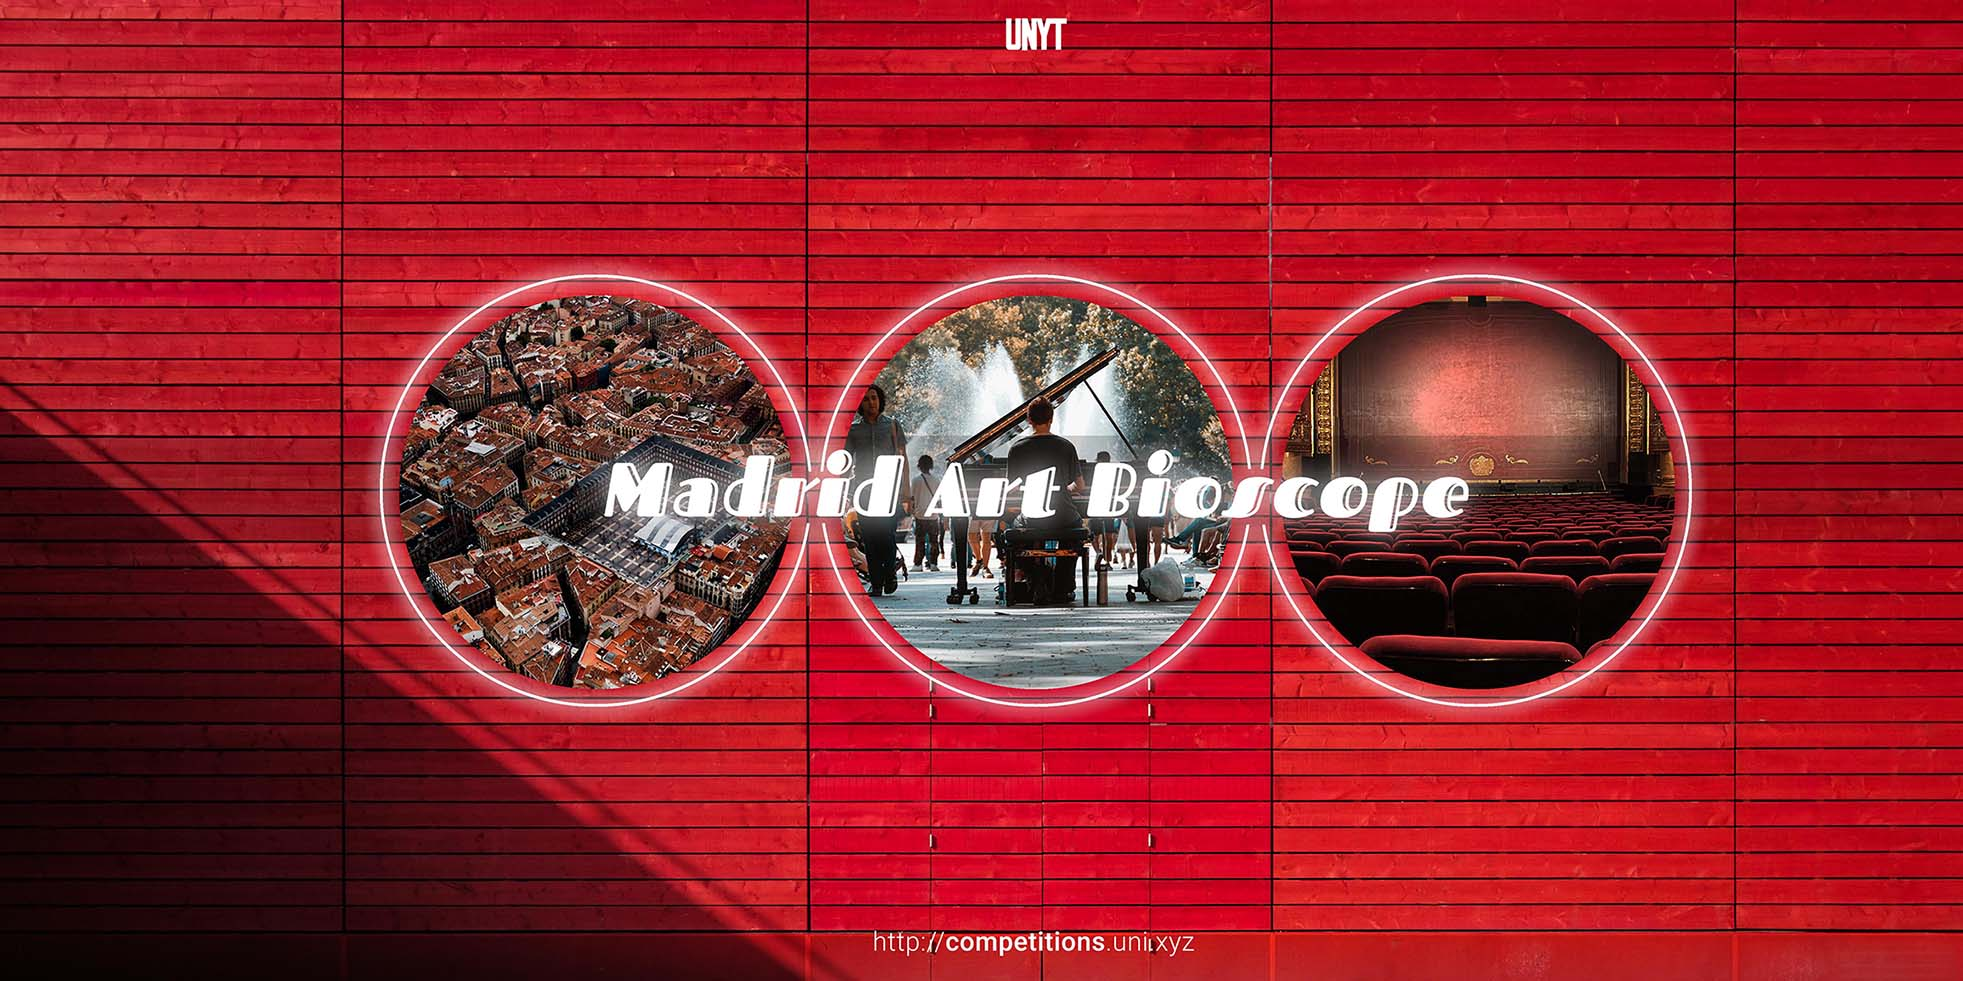 Madrid Art Bioscope